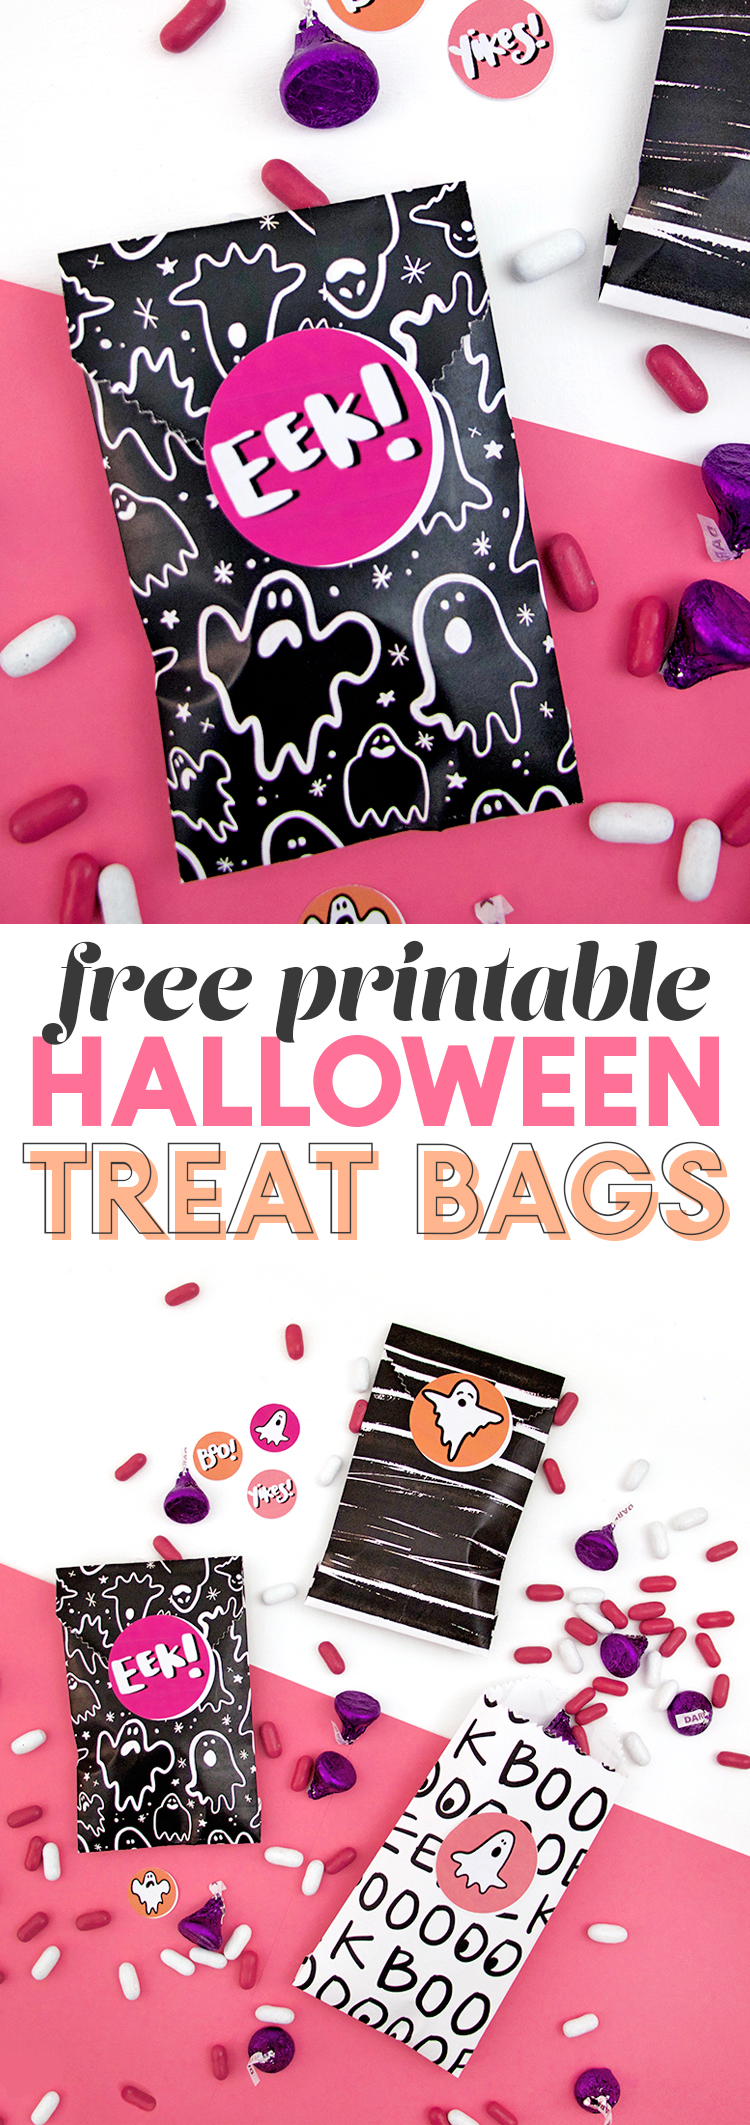 make your own halloween treat bags - free paper and sticker downloads - diy printable treat bags